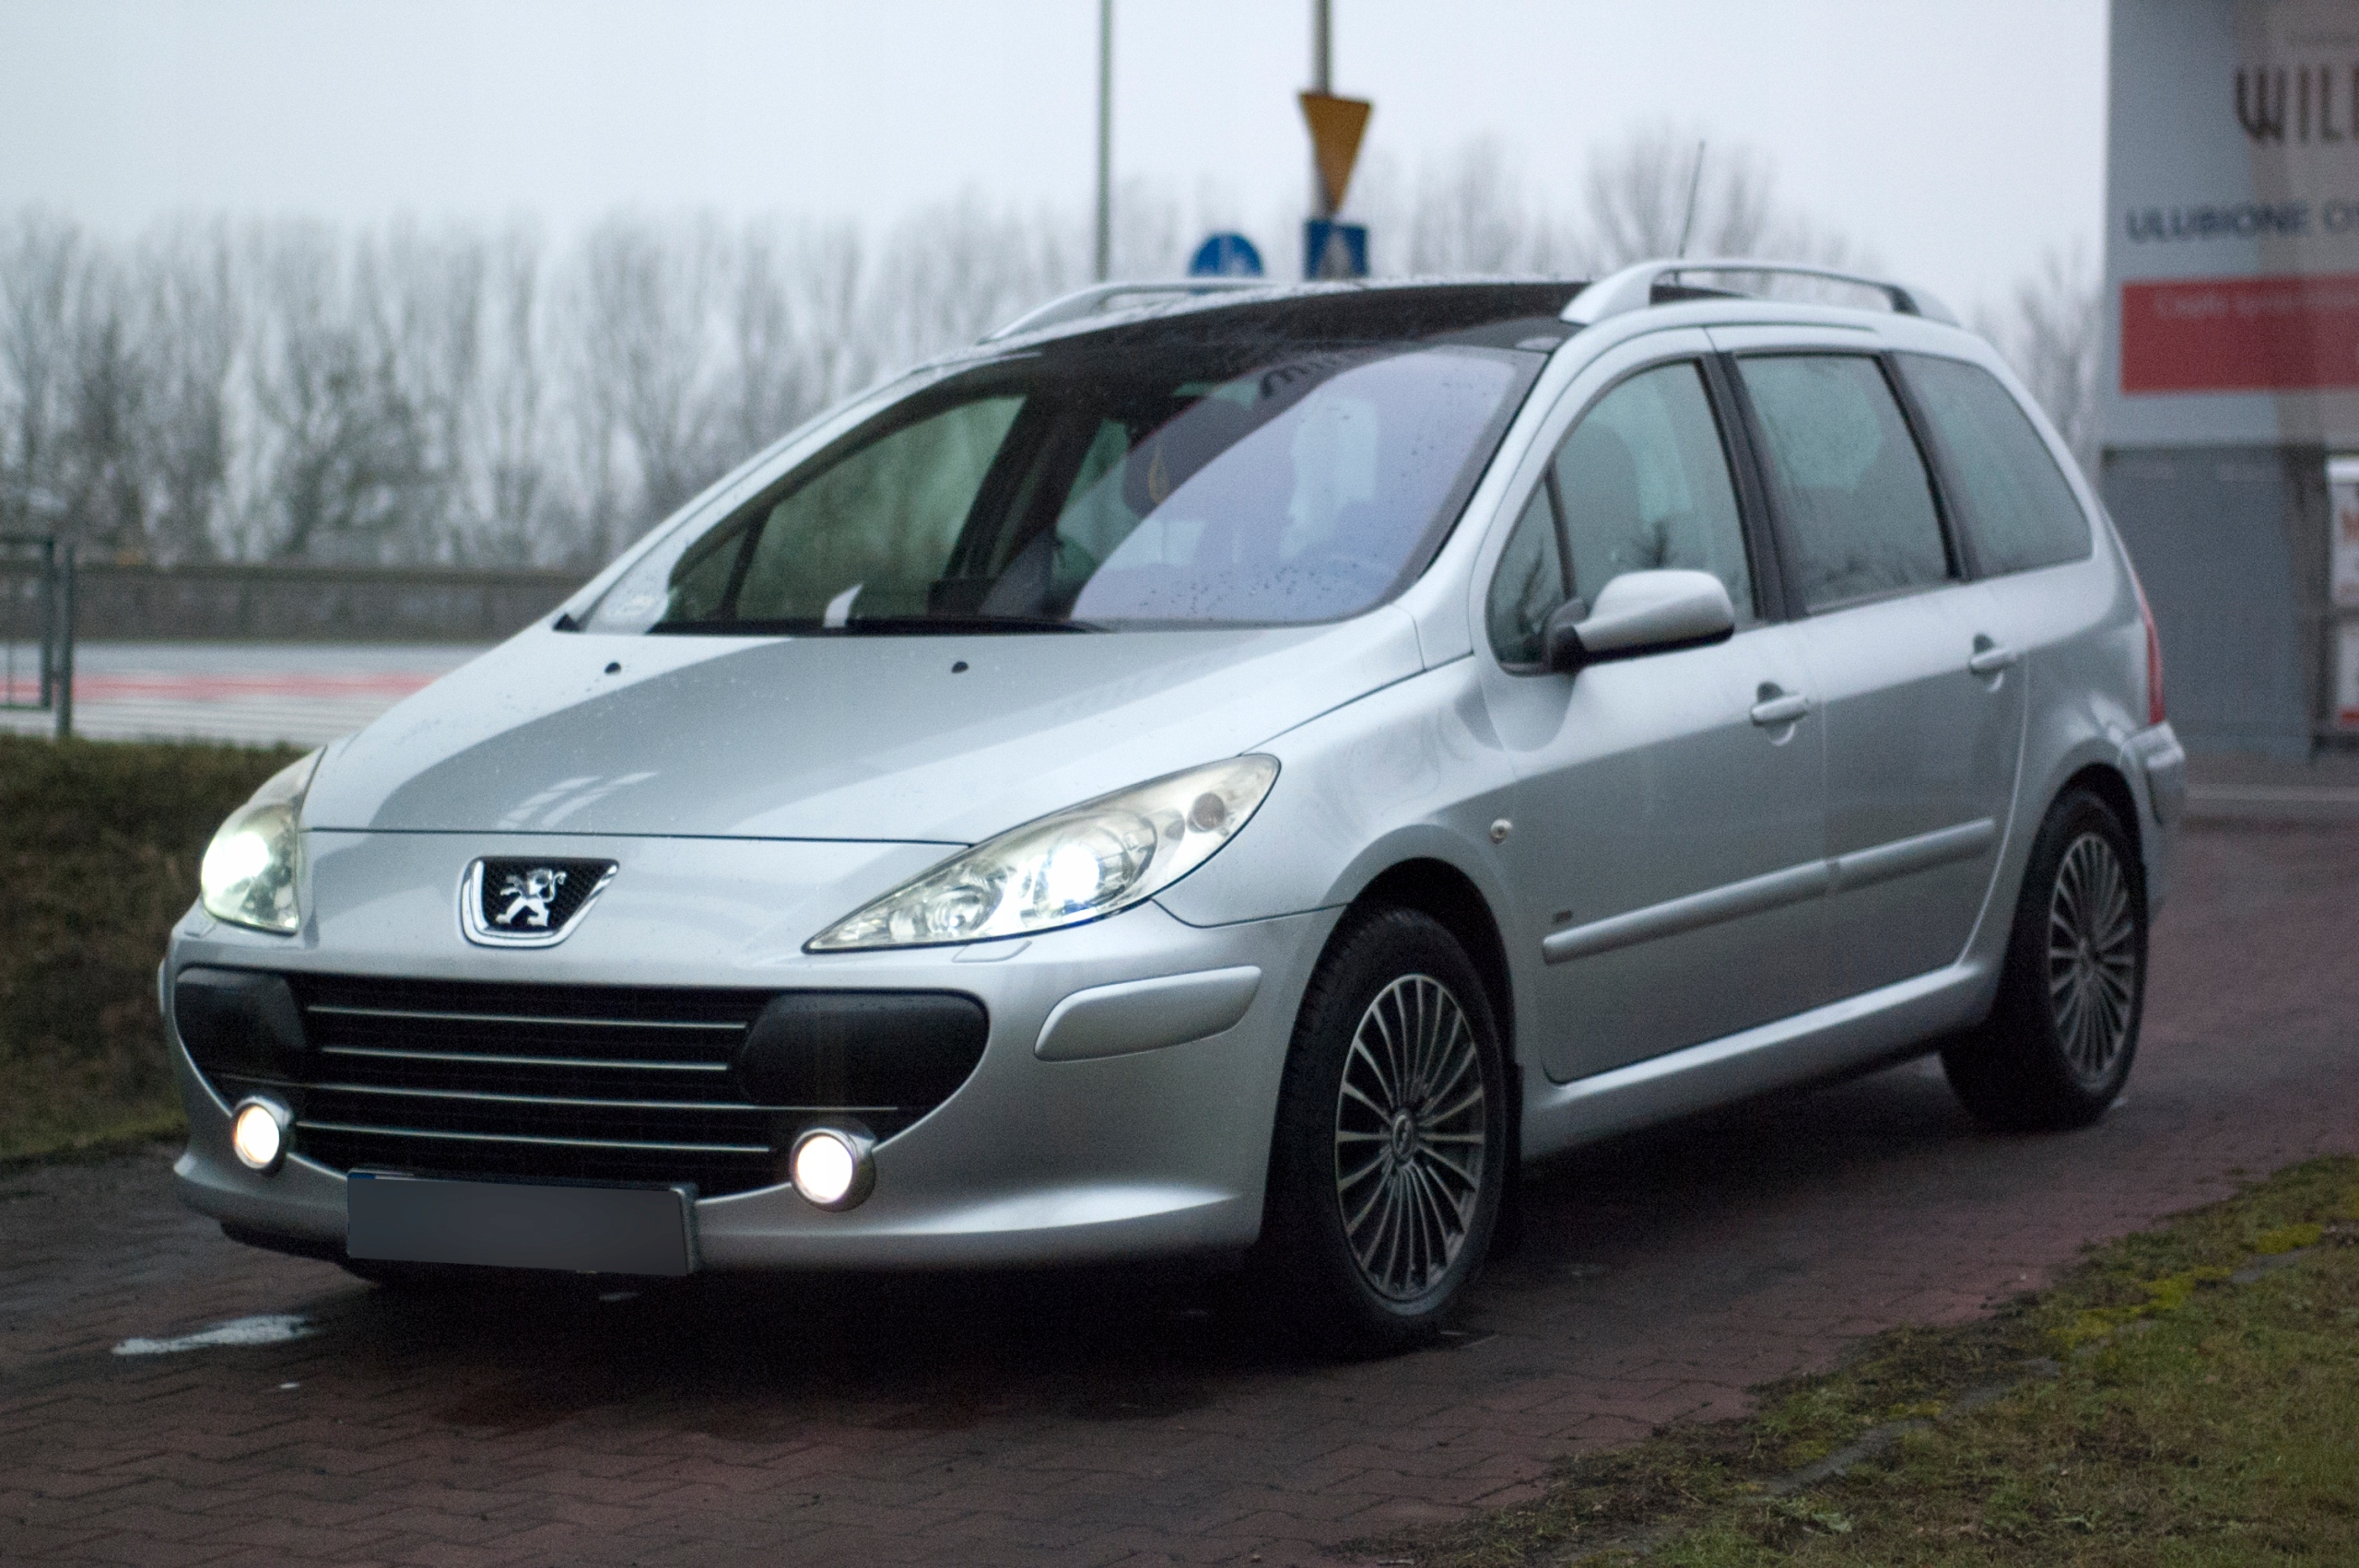 Peugeot 307SW, 2006r, 1,6HDI, exclusive, panorama